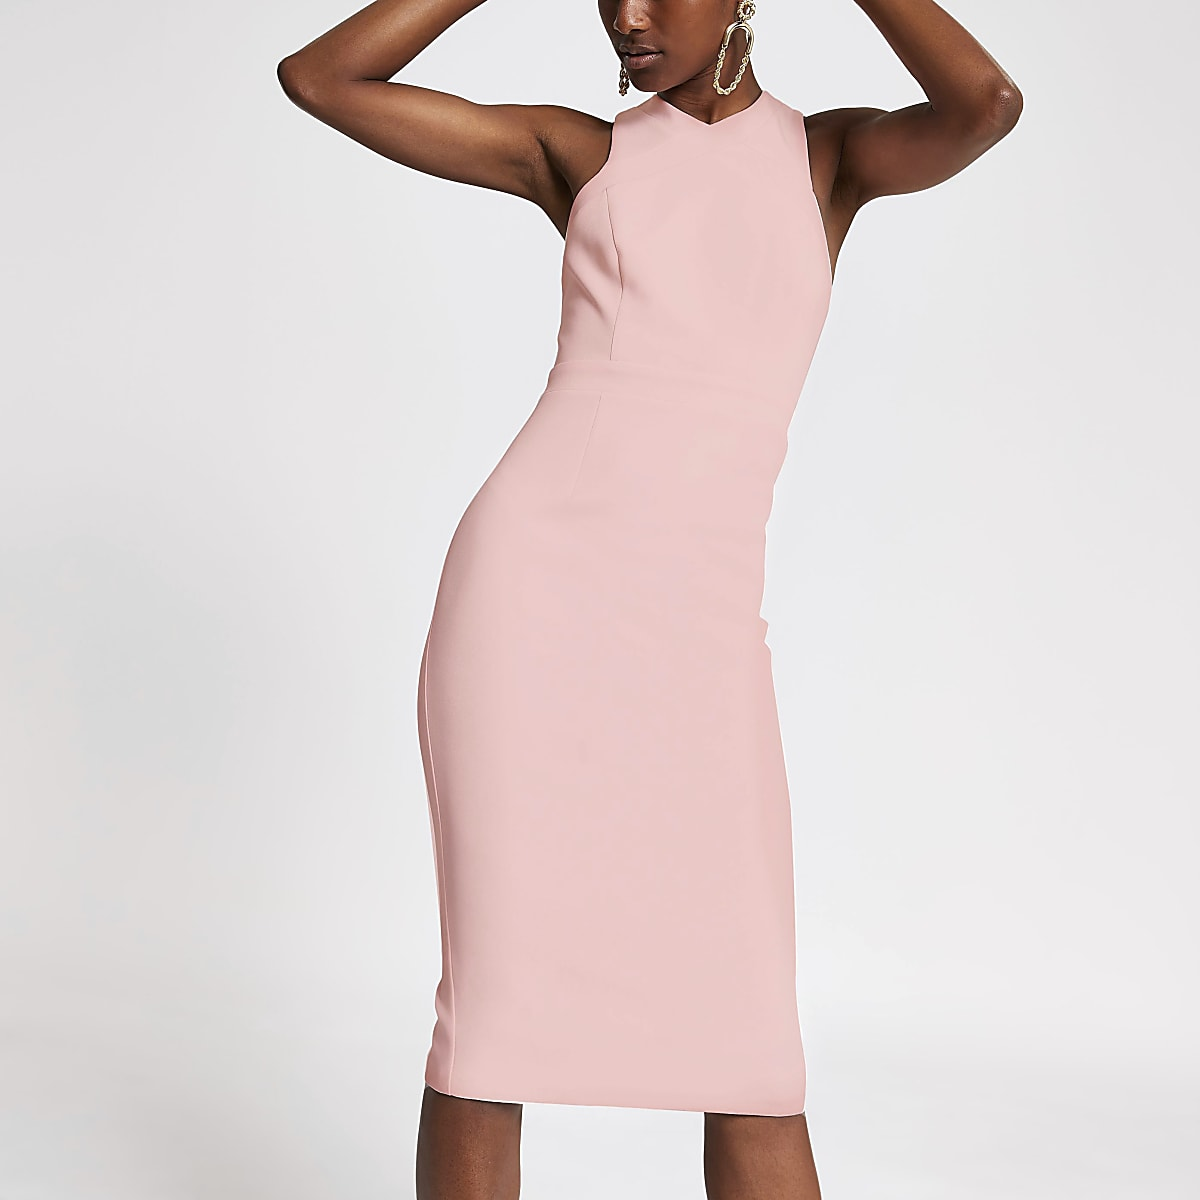 Pink high neck bodycon dress